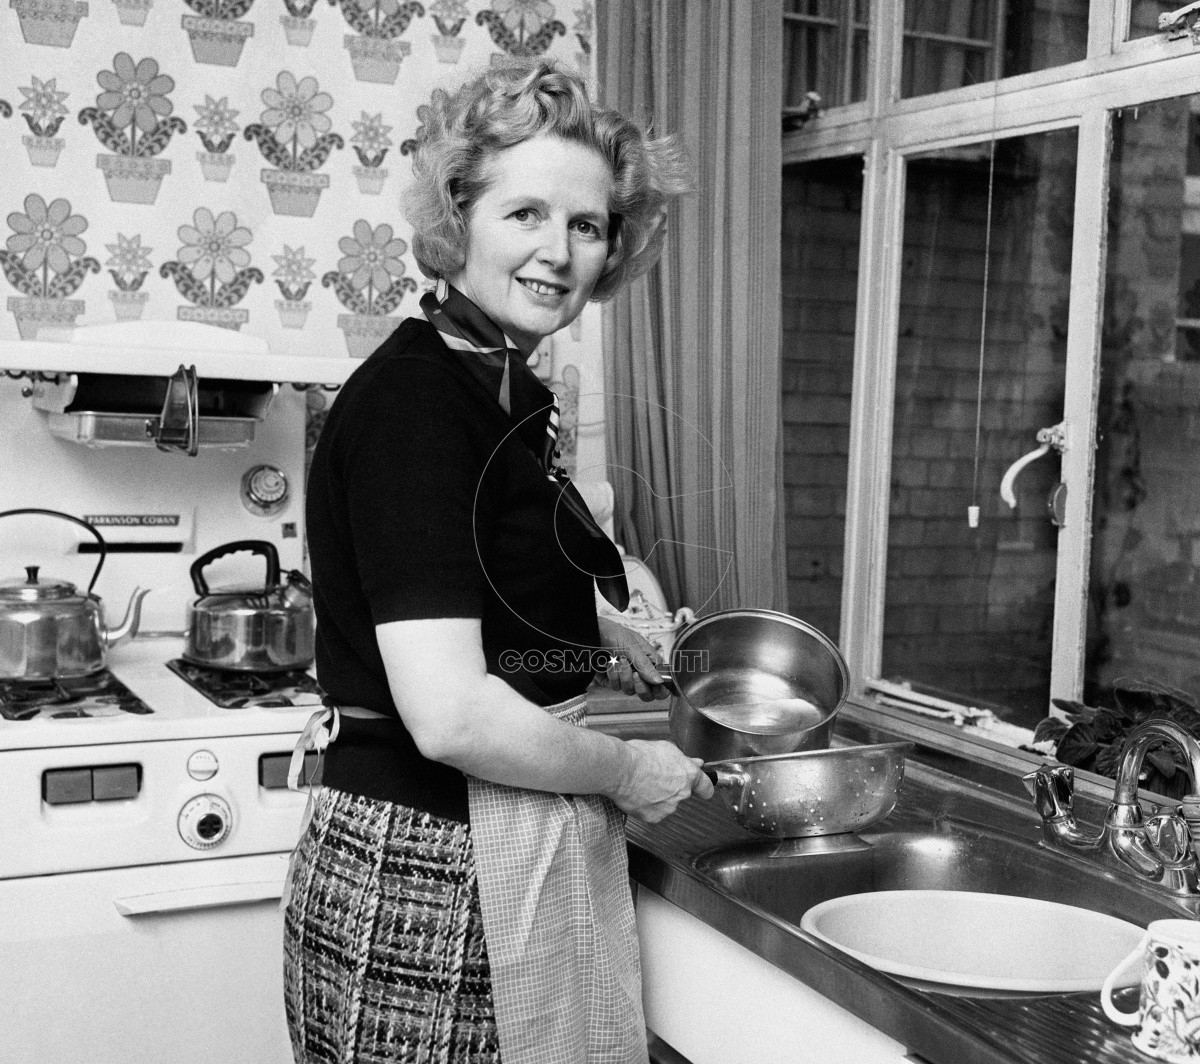 UNITED KINGDOM OUT NO SALES NO ARCHIVE PHOTOGRAPH CAN NOT BE STORED OR USED FOR MORE THAN 14 DAYS AFTER THE DAY OF TRANSMISSION FEB, 1, 1975 FILE PHOTO FILE _ This is a Feb, 1, 1975 file photo of the them Conservative Member of Parliament Margaret Thatcher, in her Chelsea home kitchen. Former British Prime Minister Margaret Thatcher, whose conservative ideas made an enduring impact on Britain died Monday April 8, 2013. She was 87. (AP Photo/ PA/File) UNITED KINGDOM OUT NO SALES NO ARCHIVE